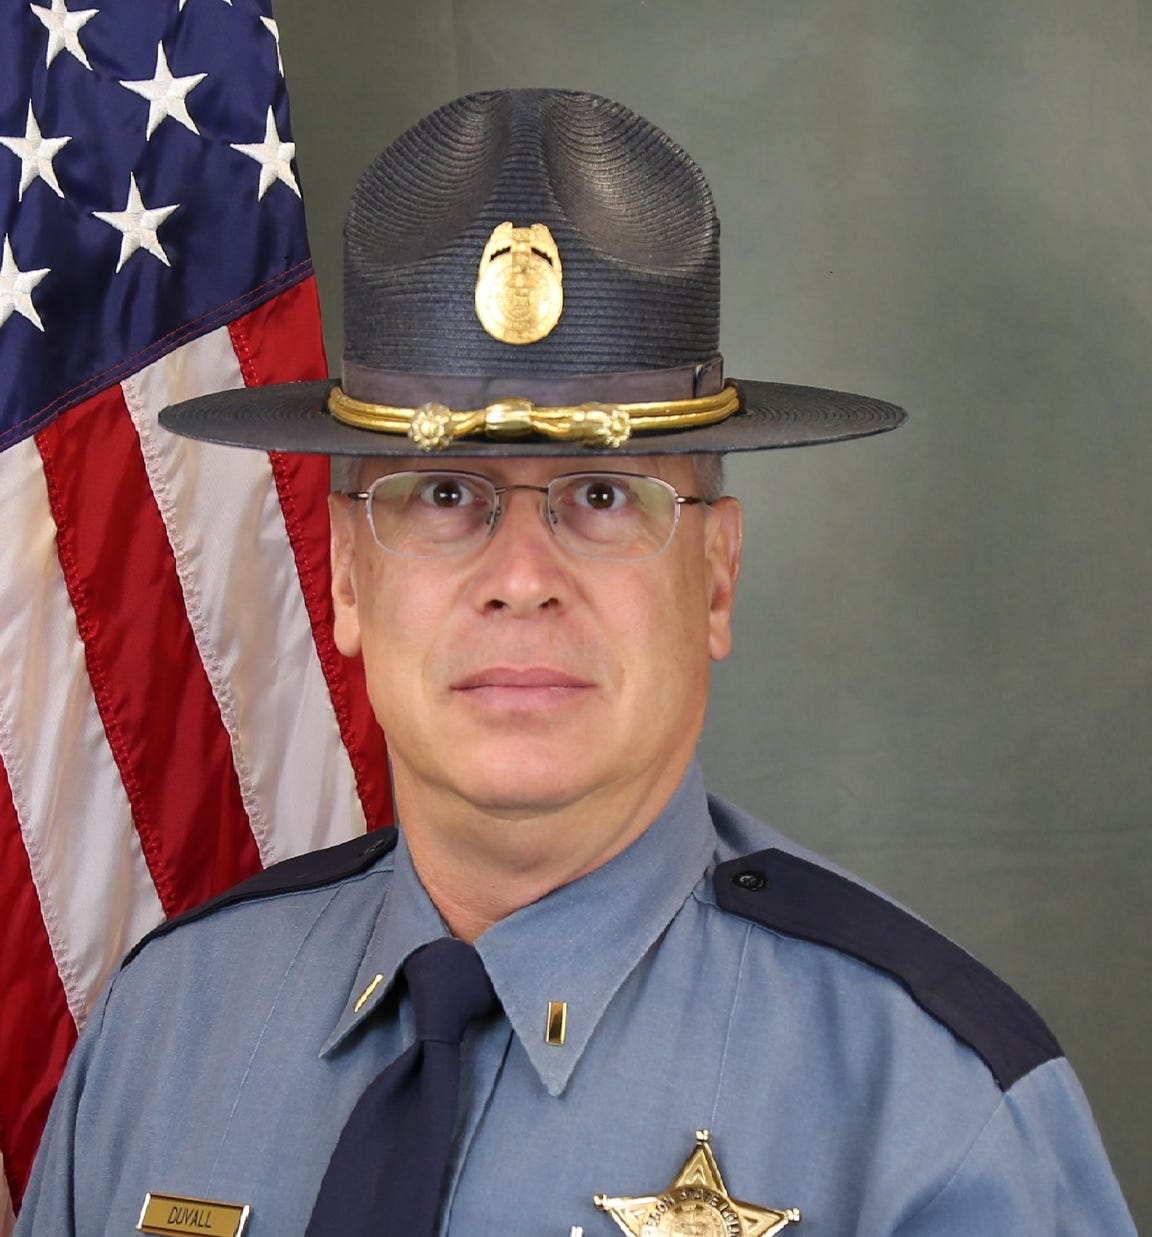 Oregon State Police Lt. Steve Duvall is the commander of his agency's Critical Incident Response Team, which provides support for troopers after a major incident or crisis.